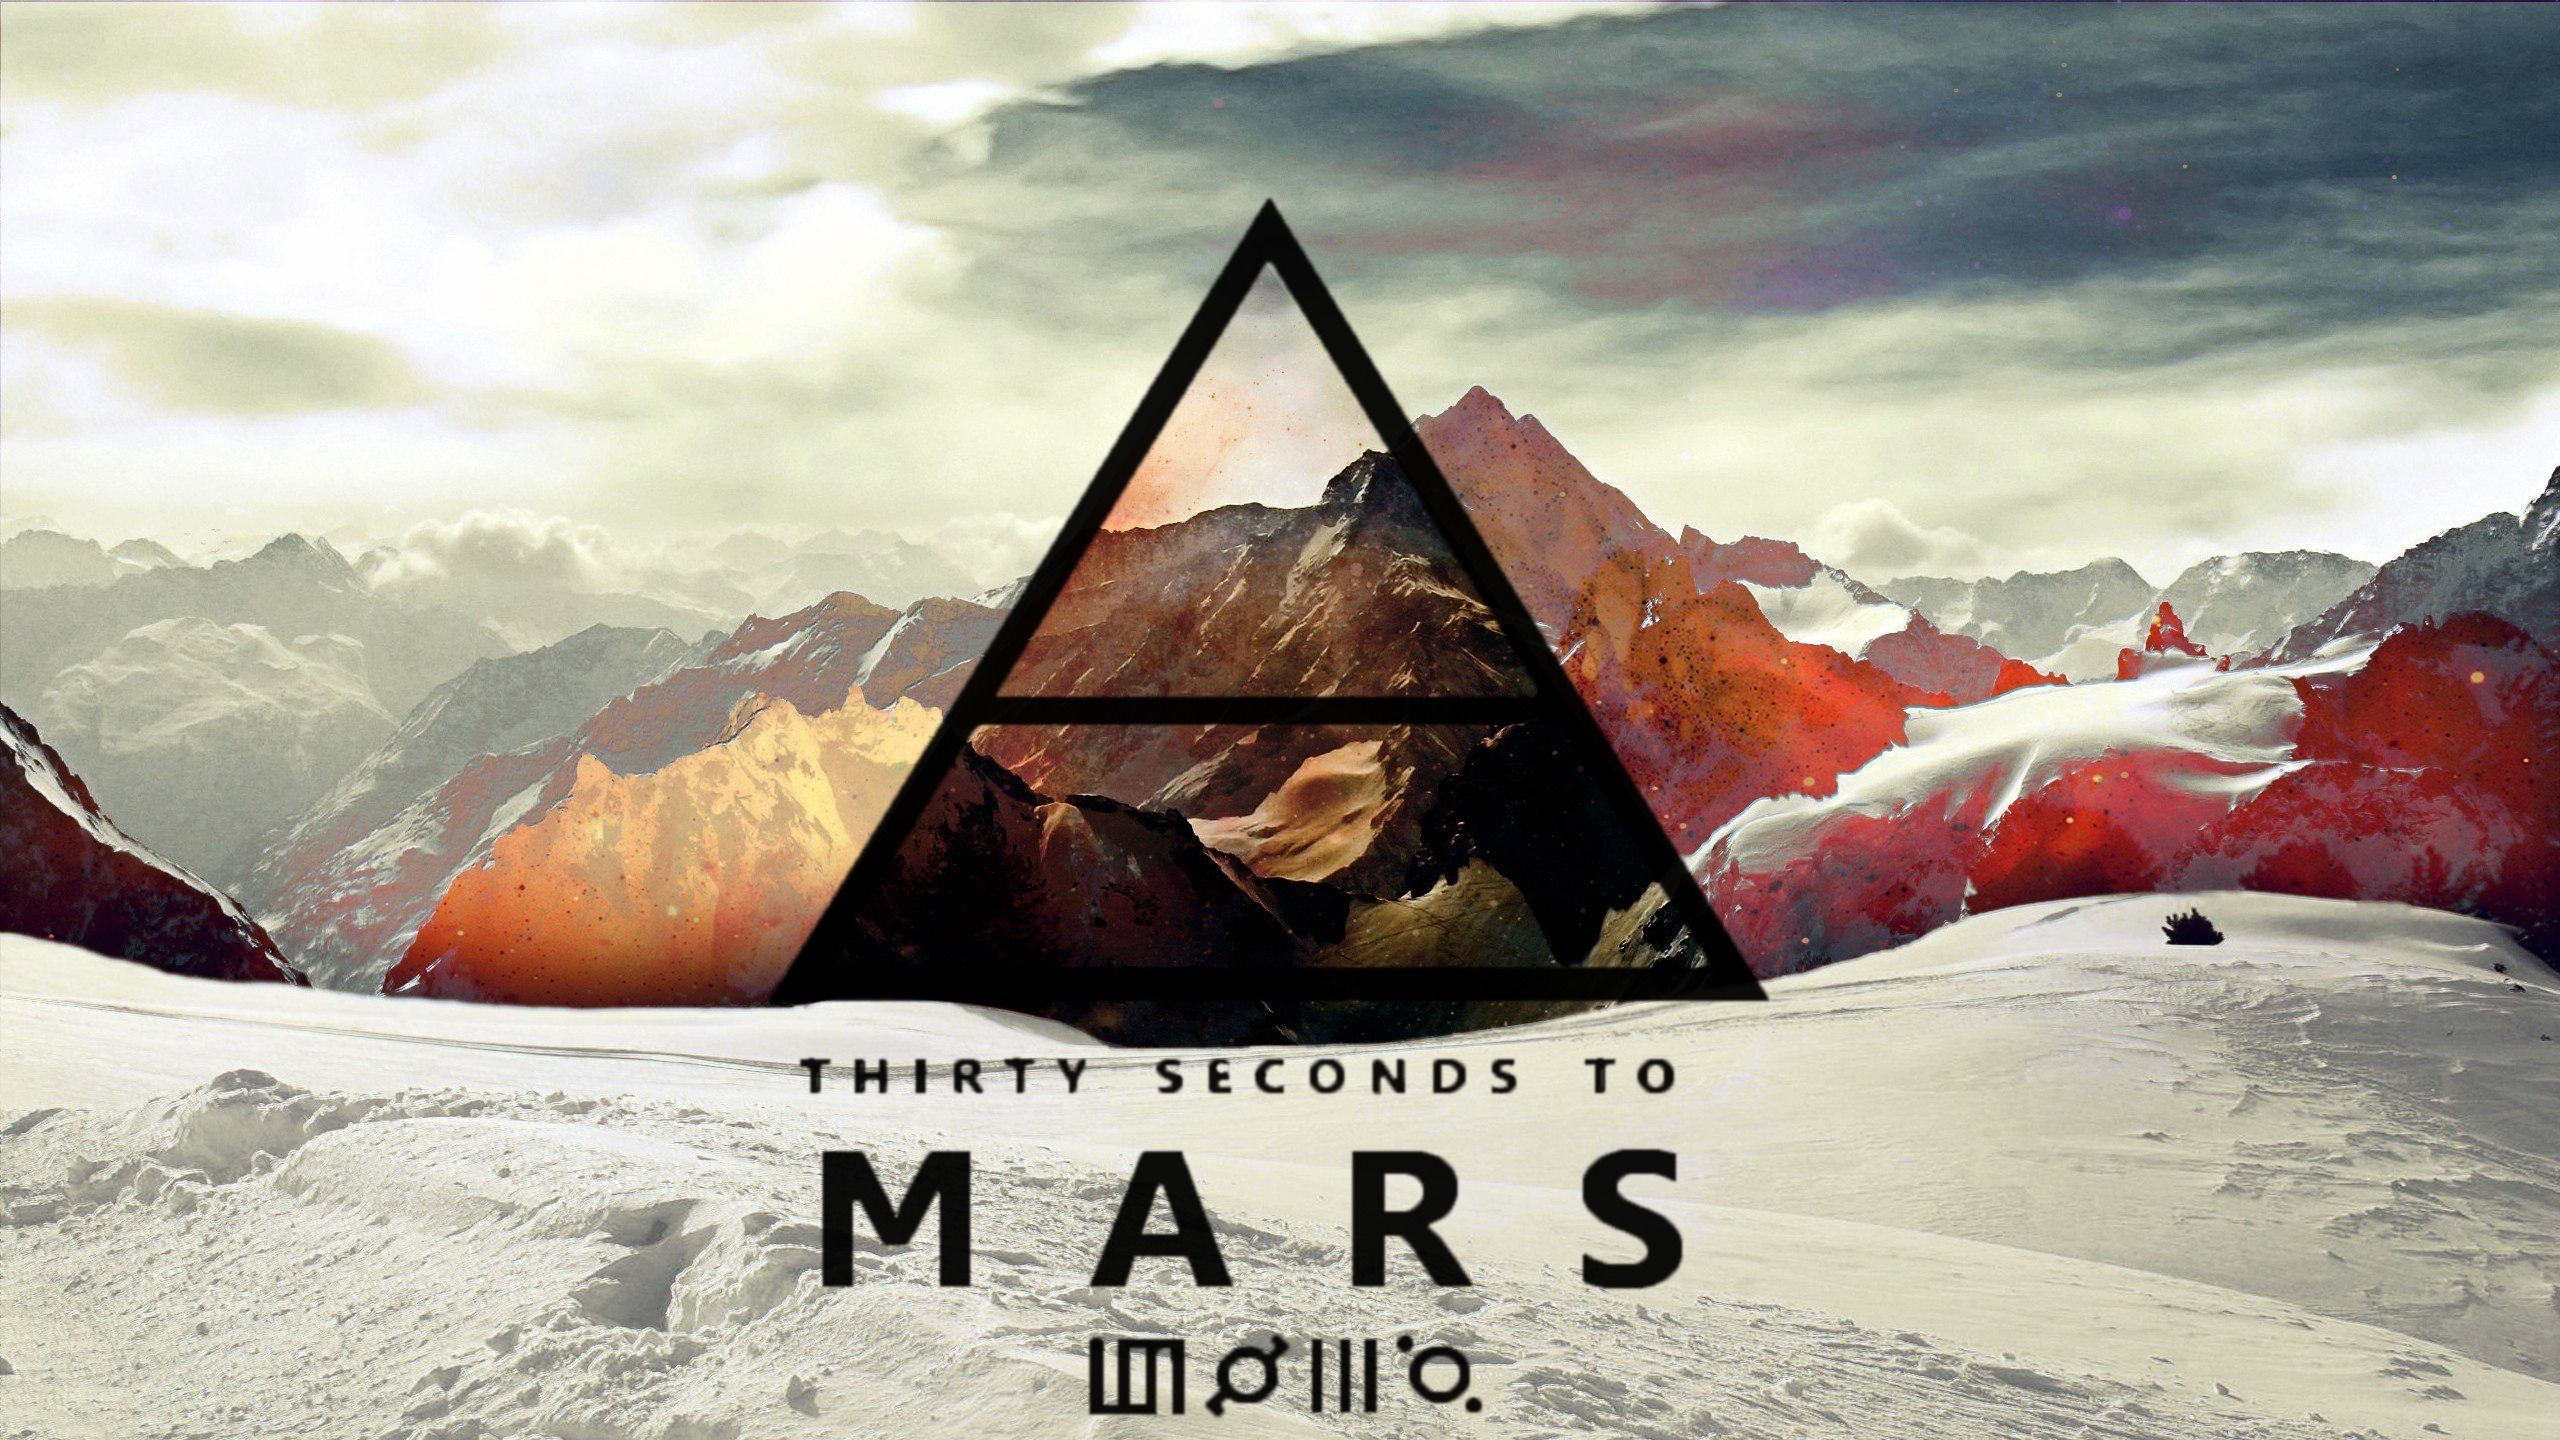 30 seconds to mars tumblr wallpaper - Google Search | Obrazy